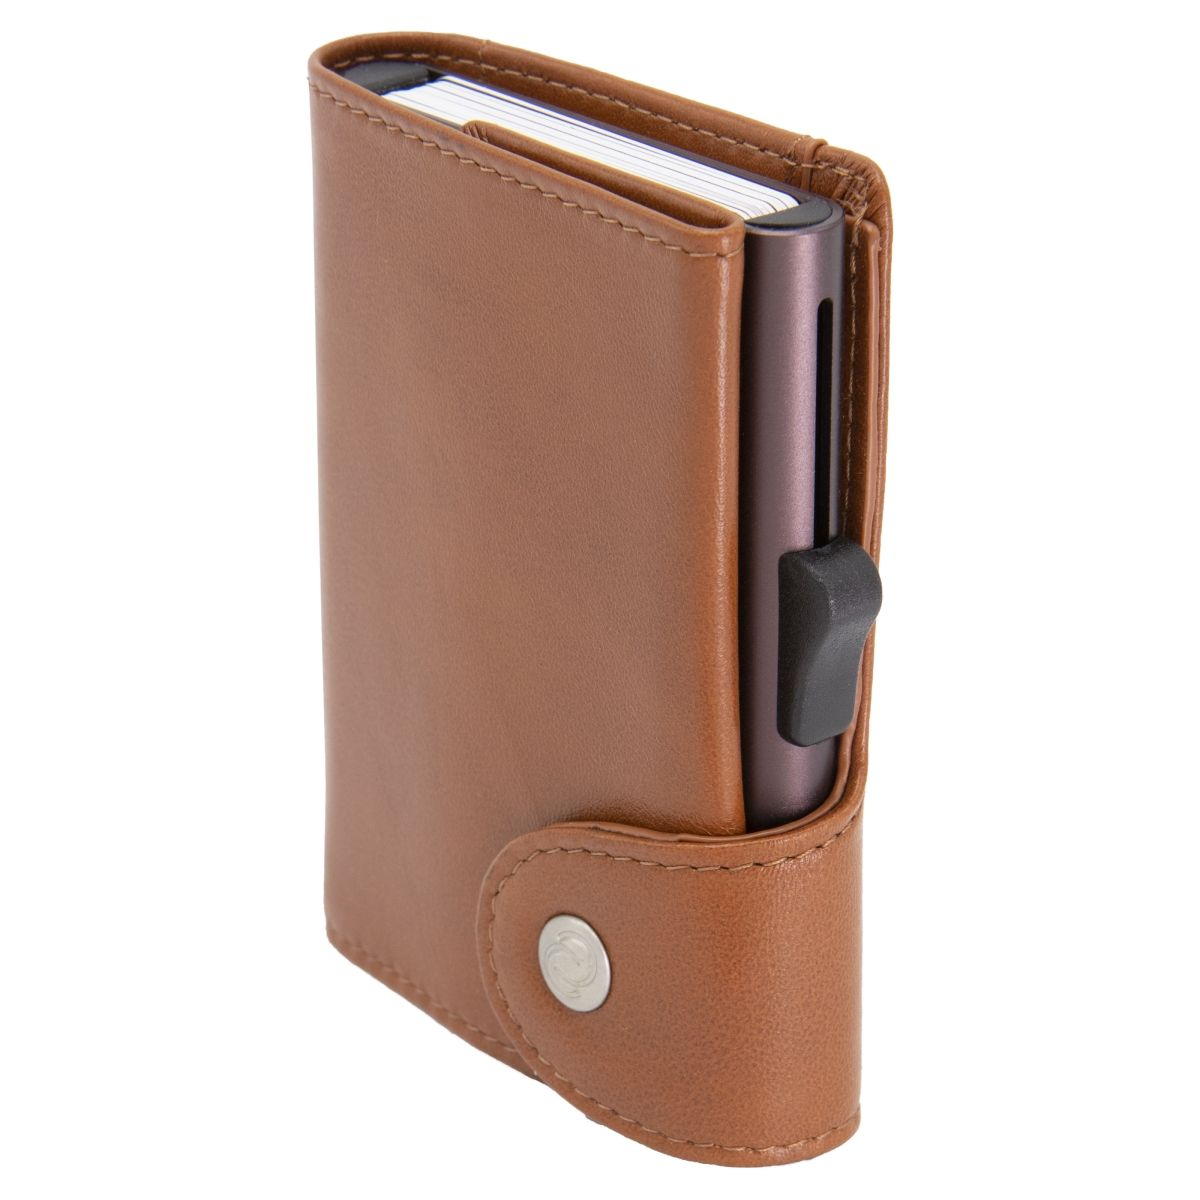 XL Aluminum Wallet with Genuine Leather - Chestnut Brown